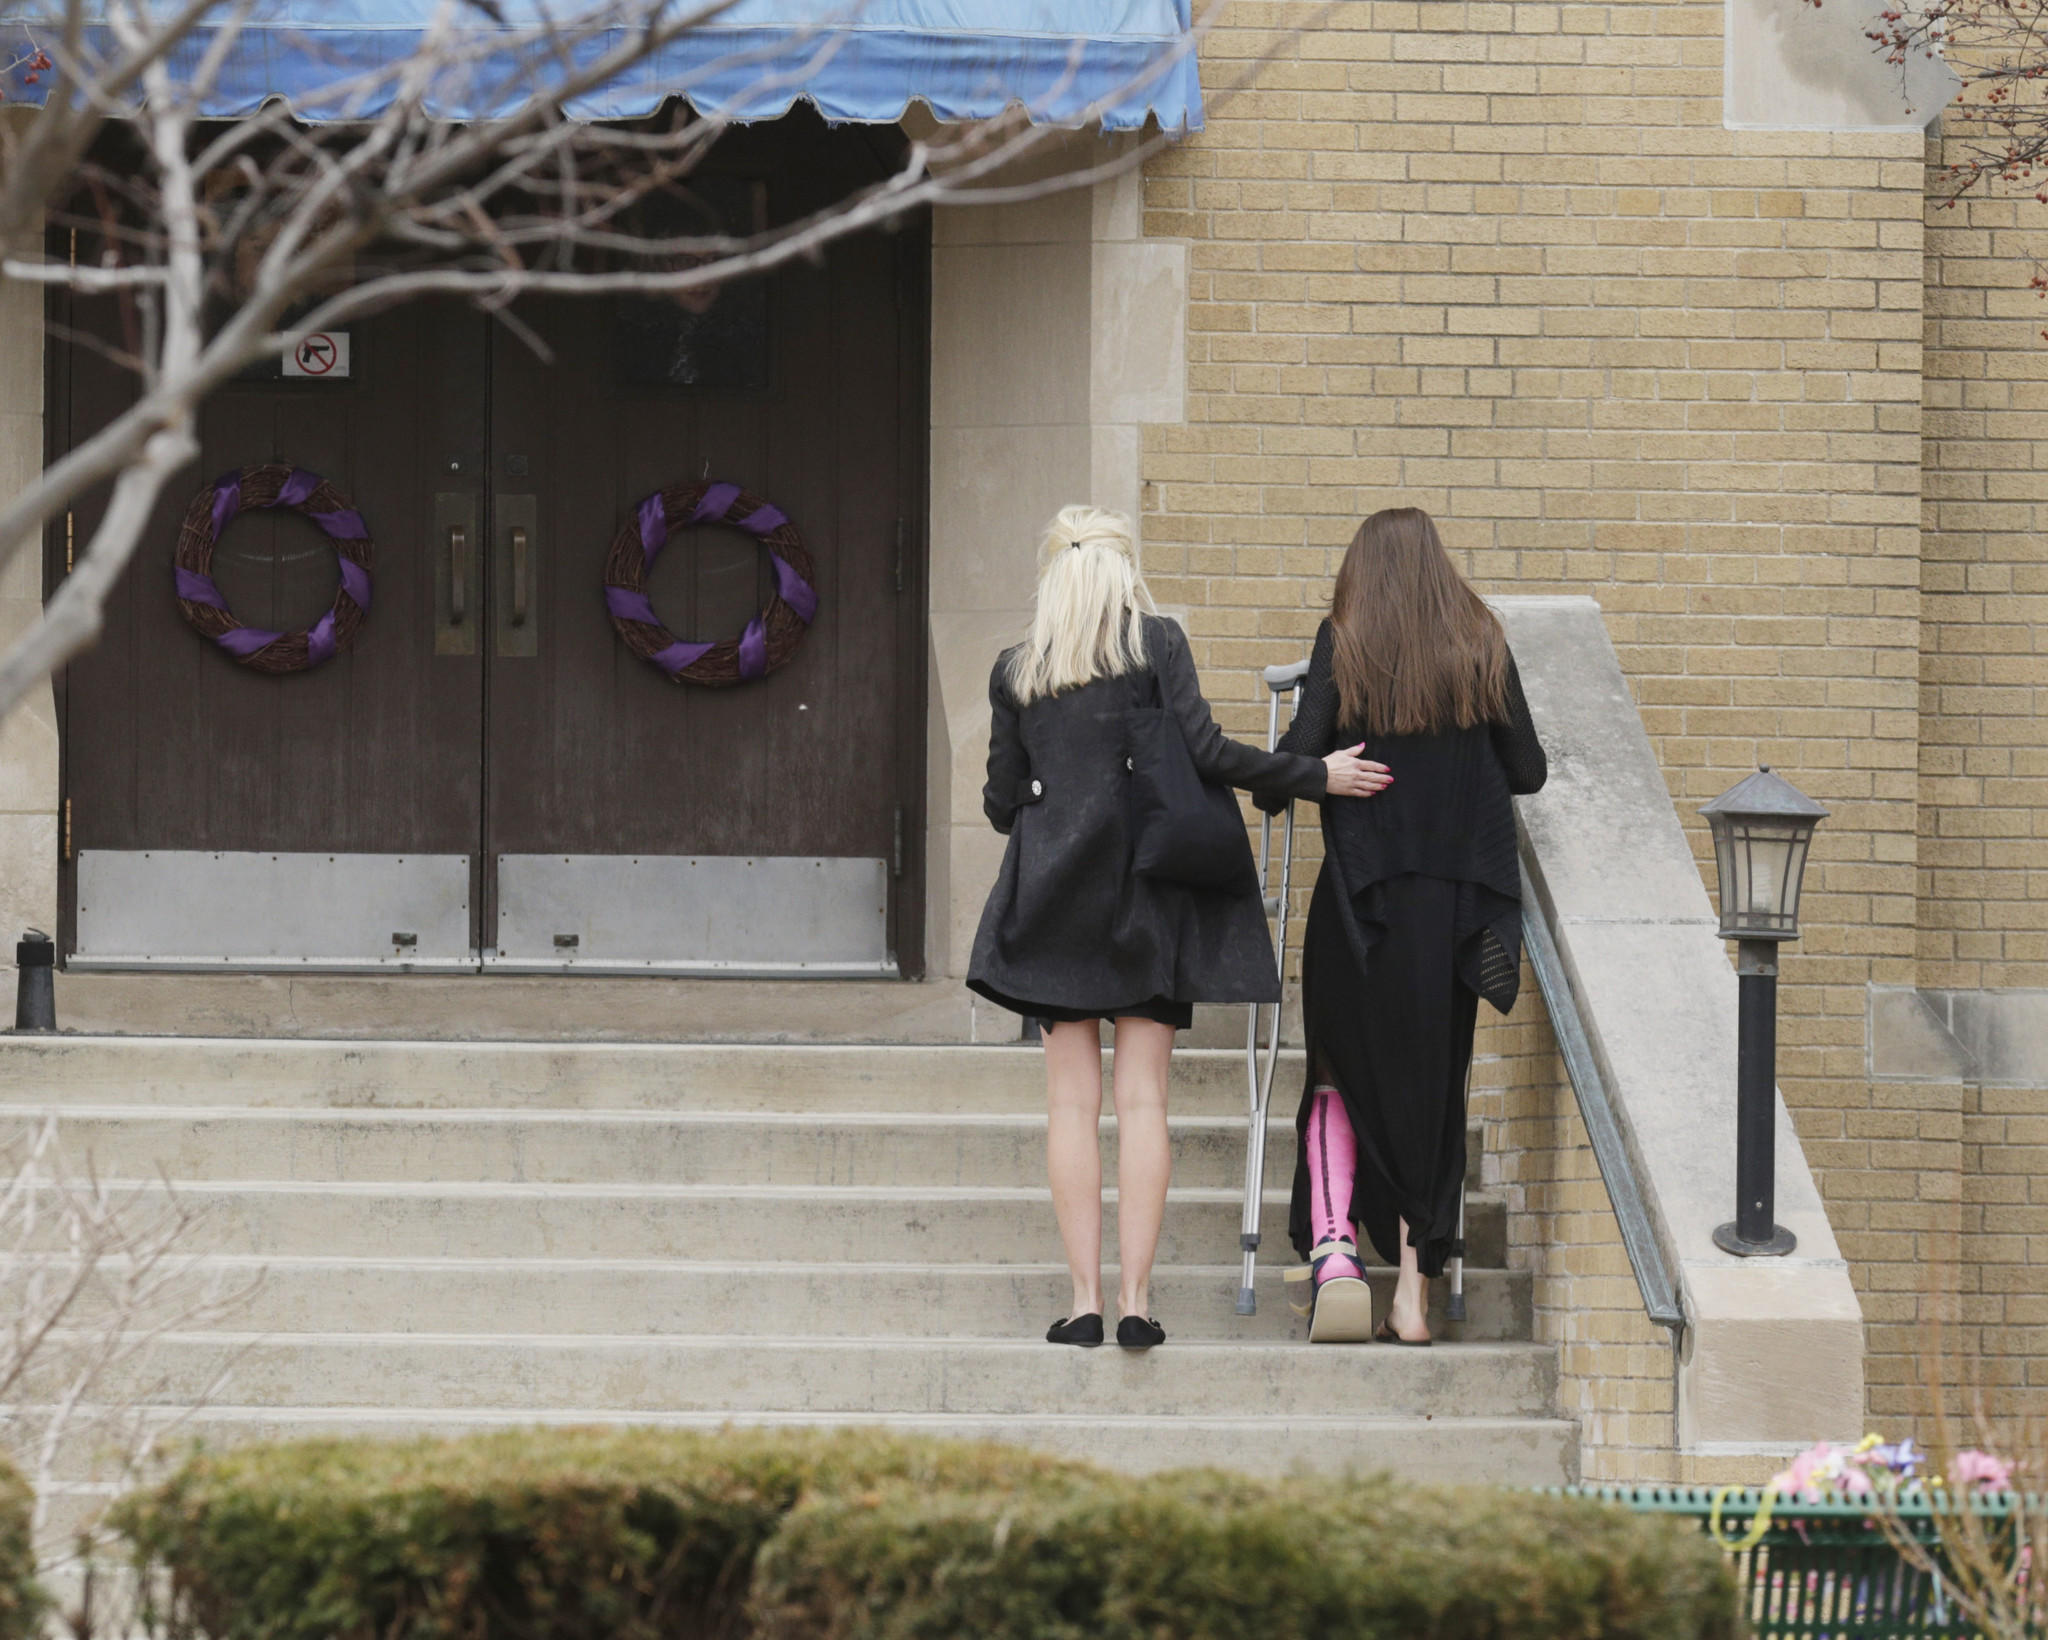 Keyana Linbo, right, the teen injured in the plane crash that killed her friend, Katherine Bronken, 15, and her father, Jeffrey Bronken, is helped up the stairs outside of St. Bede Church in Ingleside on April 1.